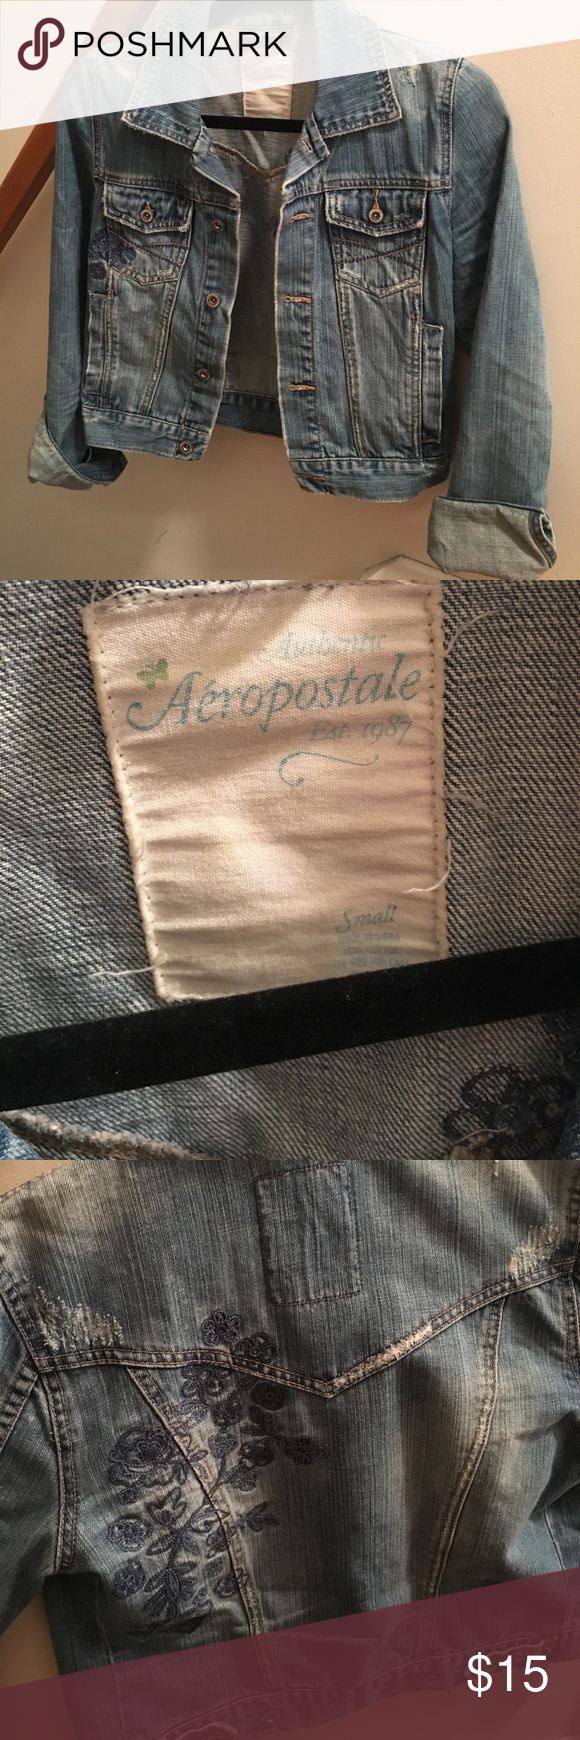 Aeropostale distressed blue jean jacket This blue jean jacket is the perfect accessory for any outfit! It is distressed with a flower design on parts of the front and back. It is a shorter length jacket that will go perfect with a tank and jeans or skirt. Aeropostale Jackets & Coats Jean Jackets